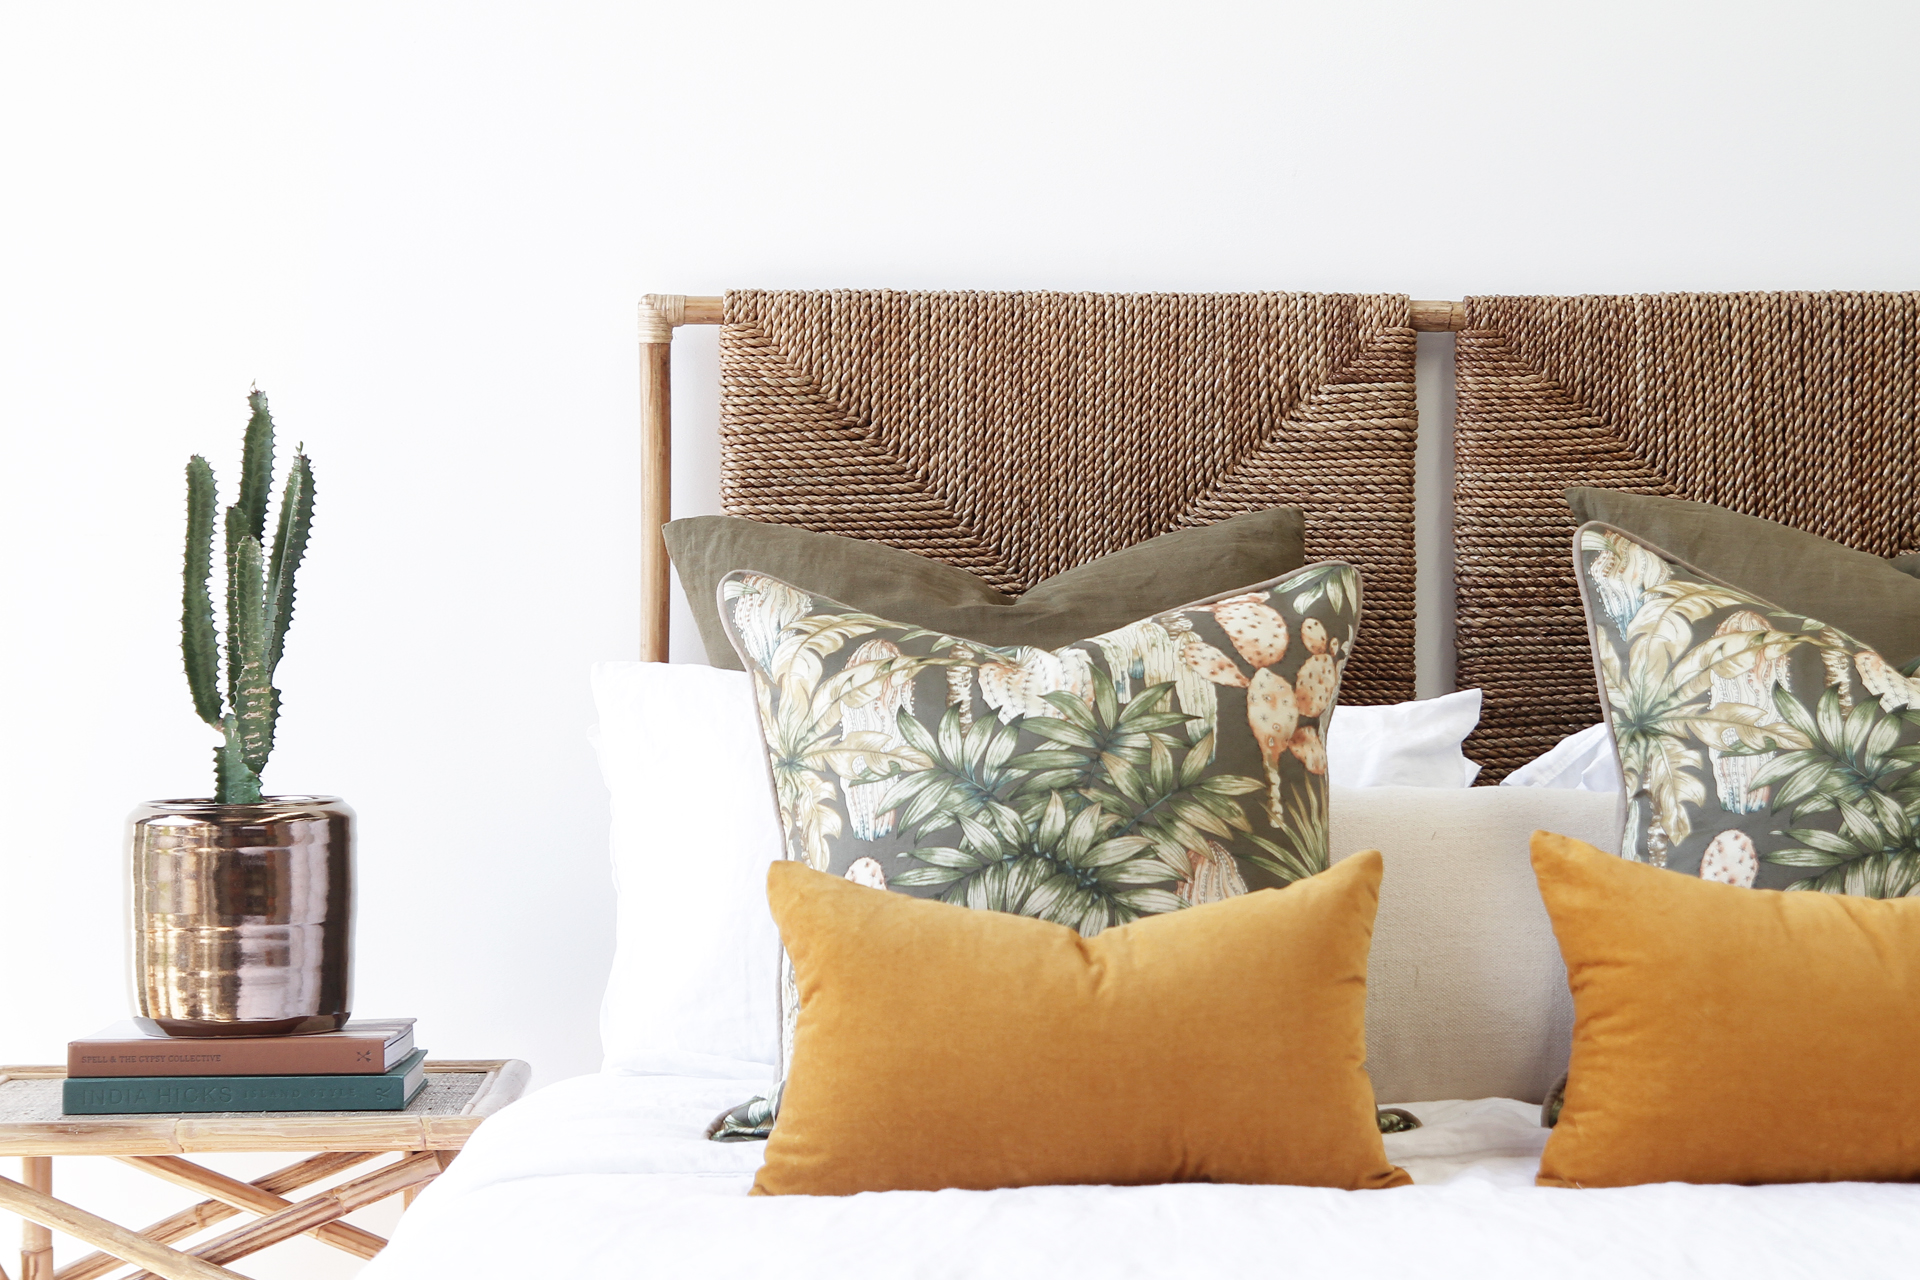 Bedroom Naturally Cane Rattan And Wicker Furniture